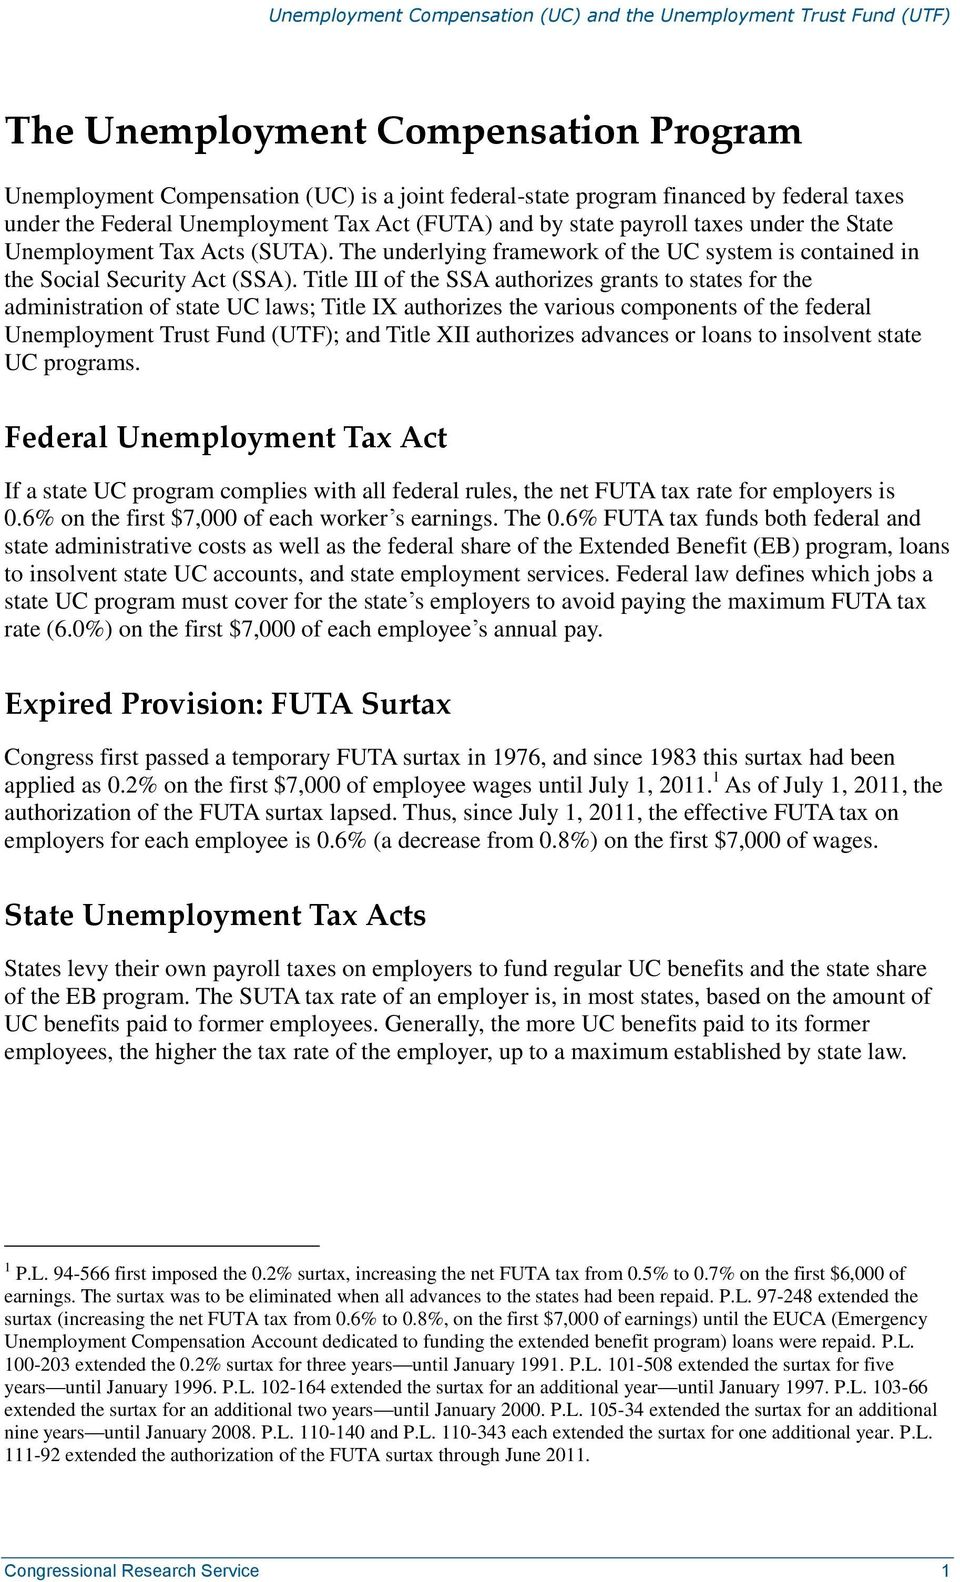 Title III of the SSA authorizes grants to states for the administration of state UC laws; Title IX authorizes the various components of the federal Unemployment Trust Fund (UTF); and Title XII